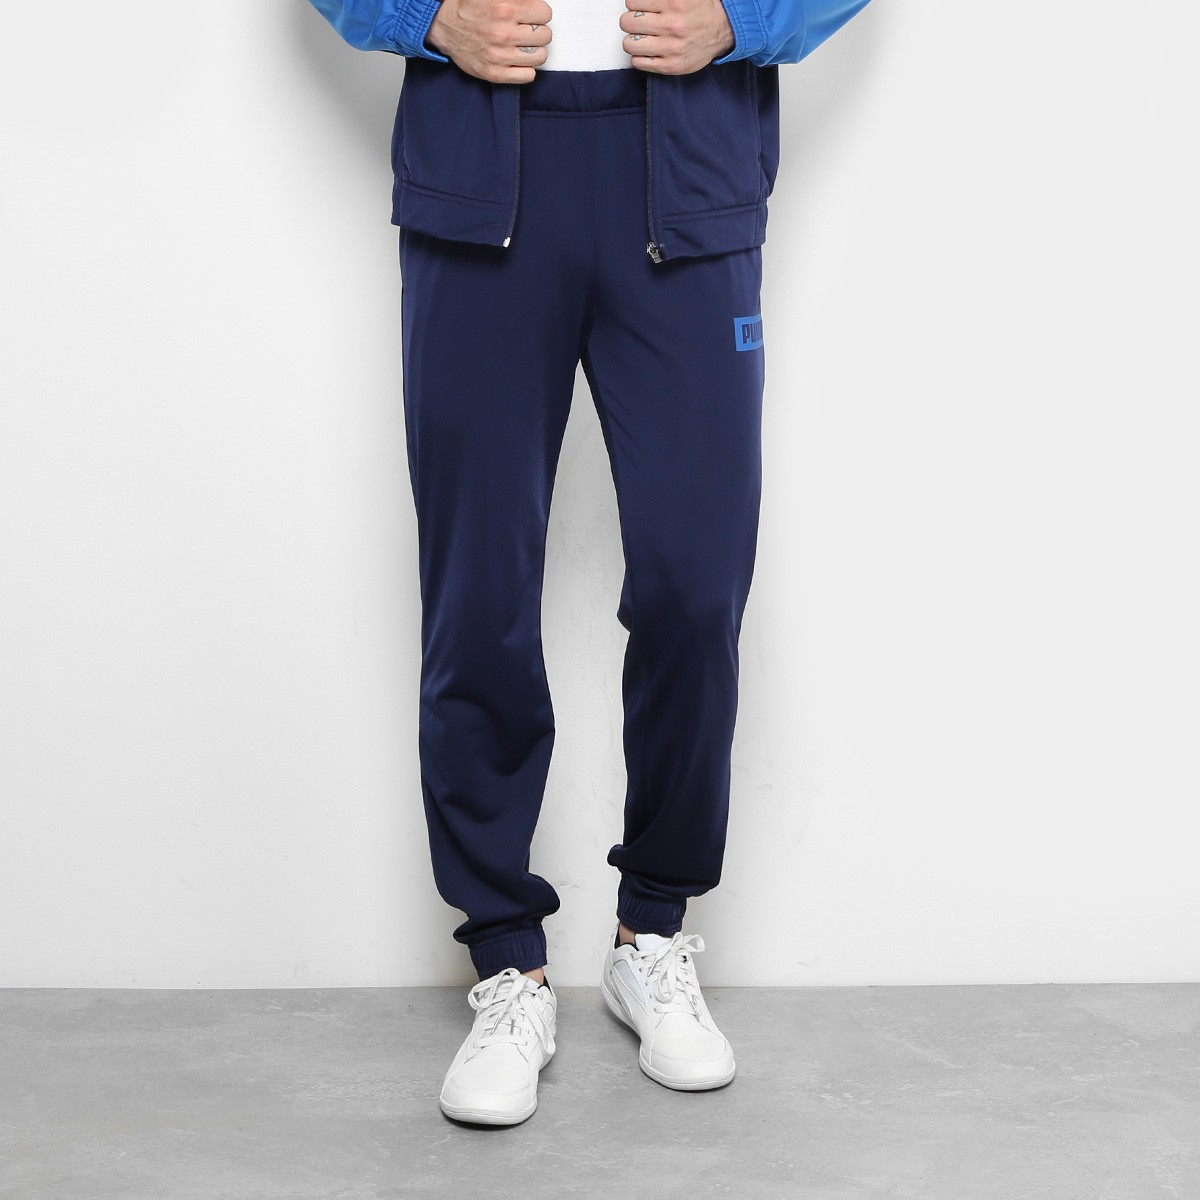 AGASALHO PUMA GRAPHIC REBEL TRICOT SUIT